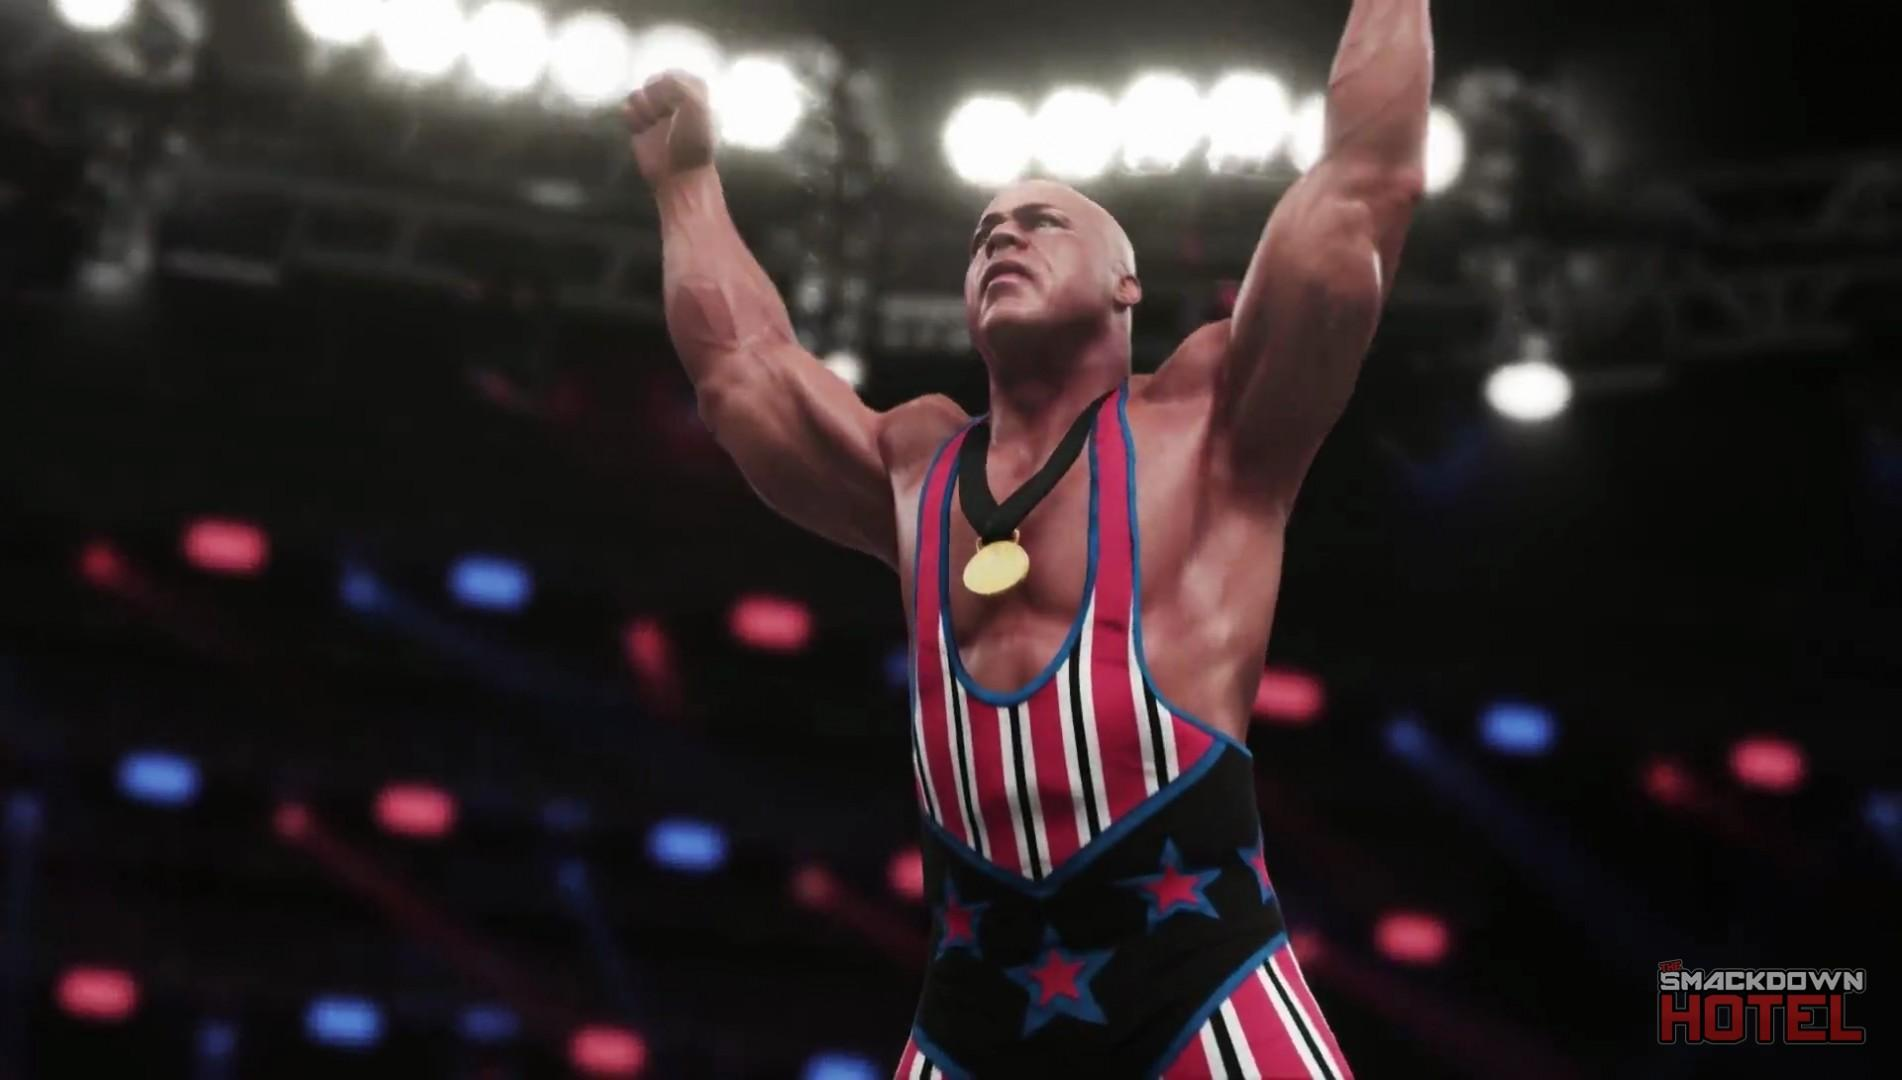 WWE2K18 Trailer KurtAngle 2